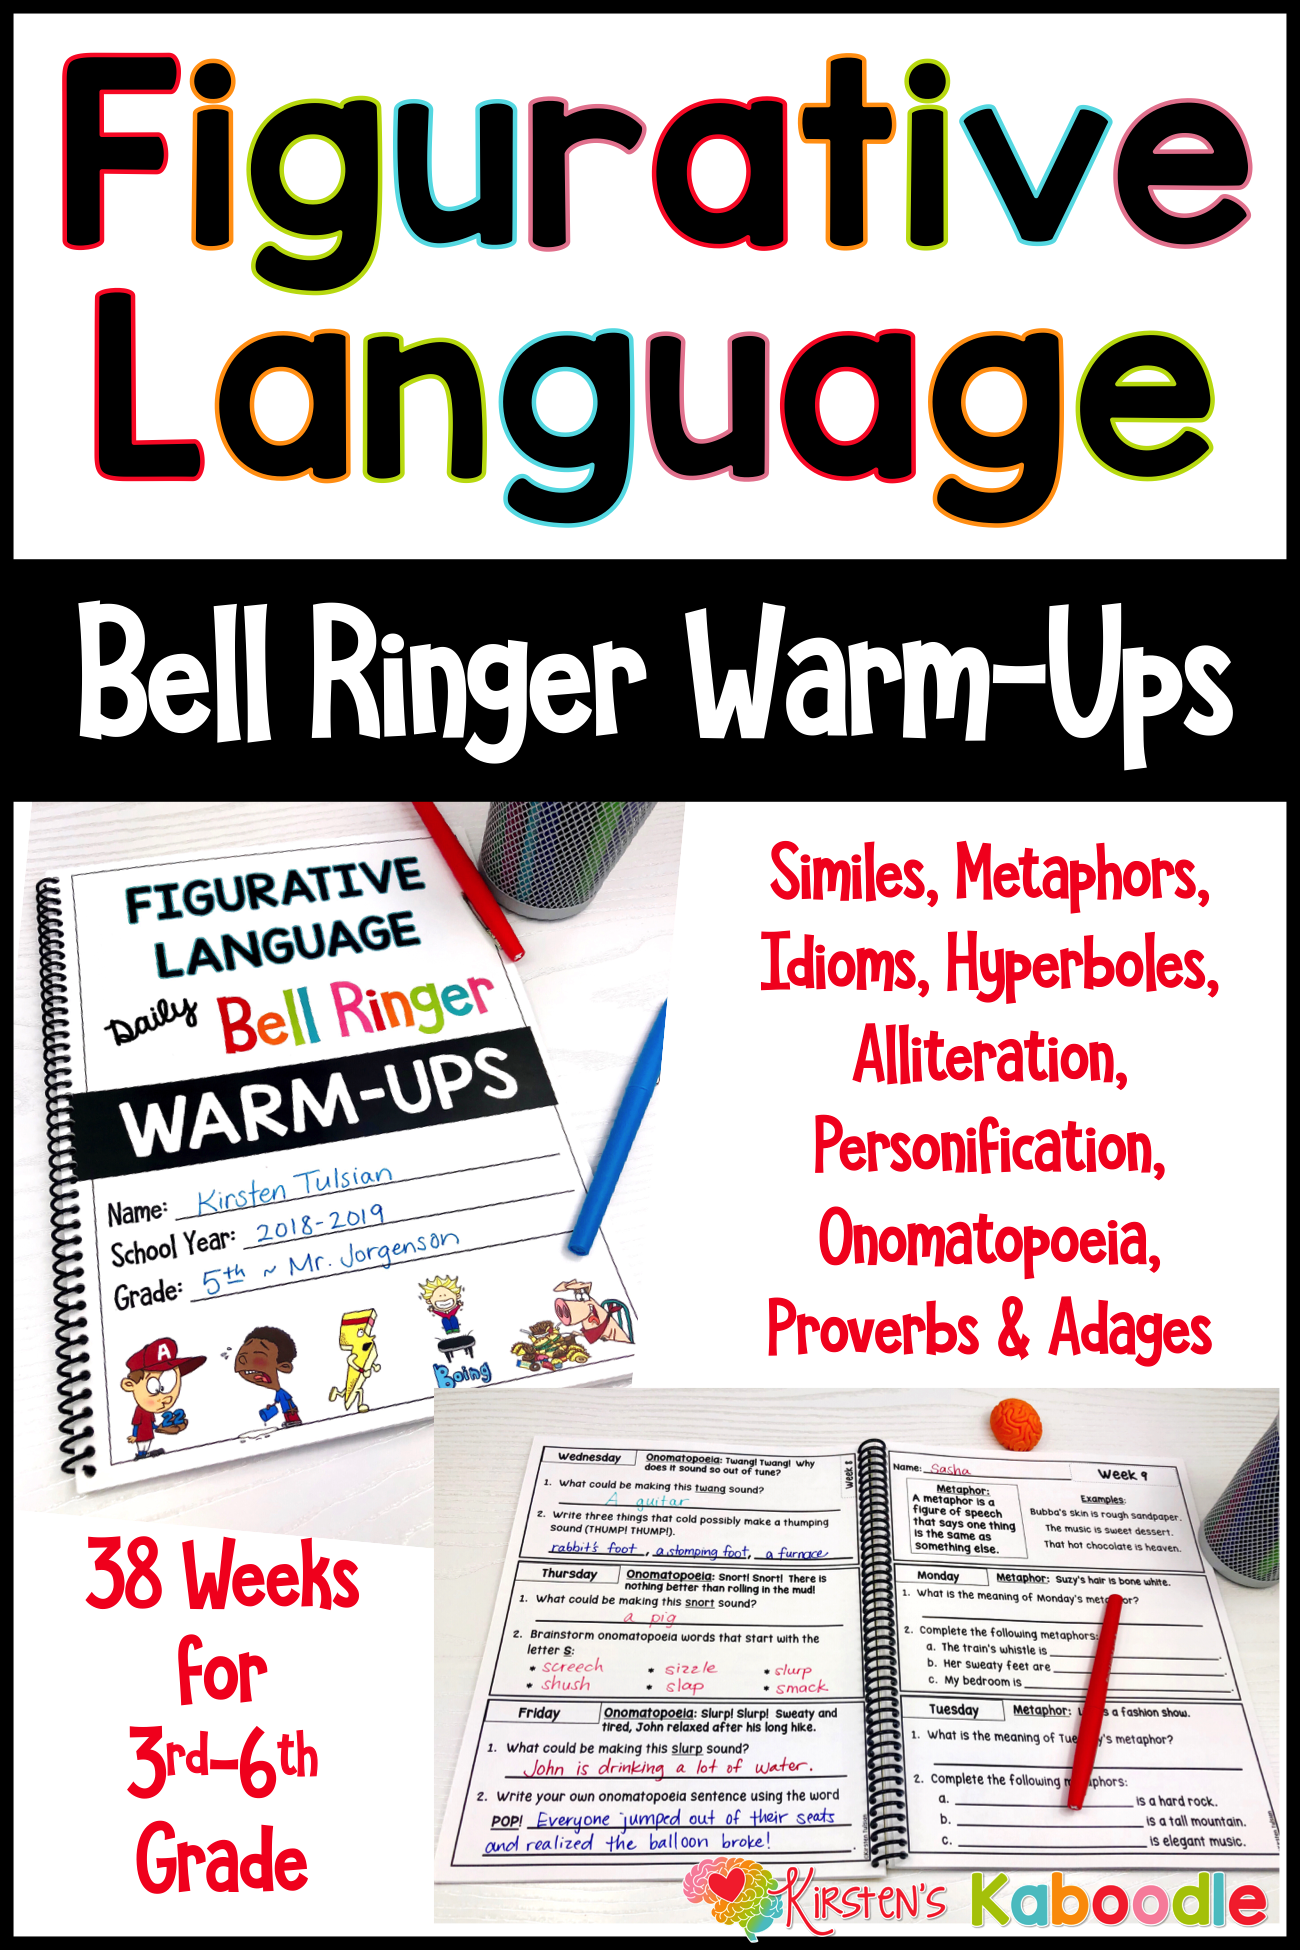 Figurative Language Bell Ringers Warm Up Activities